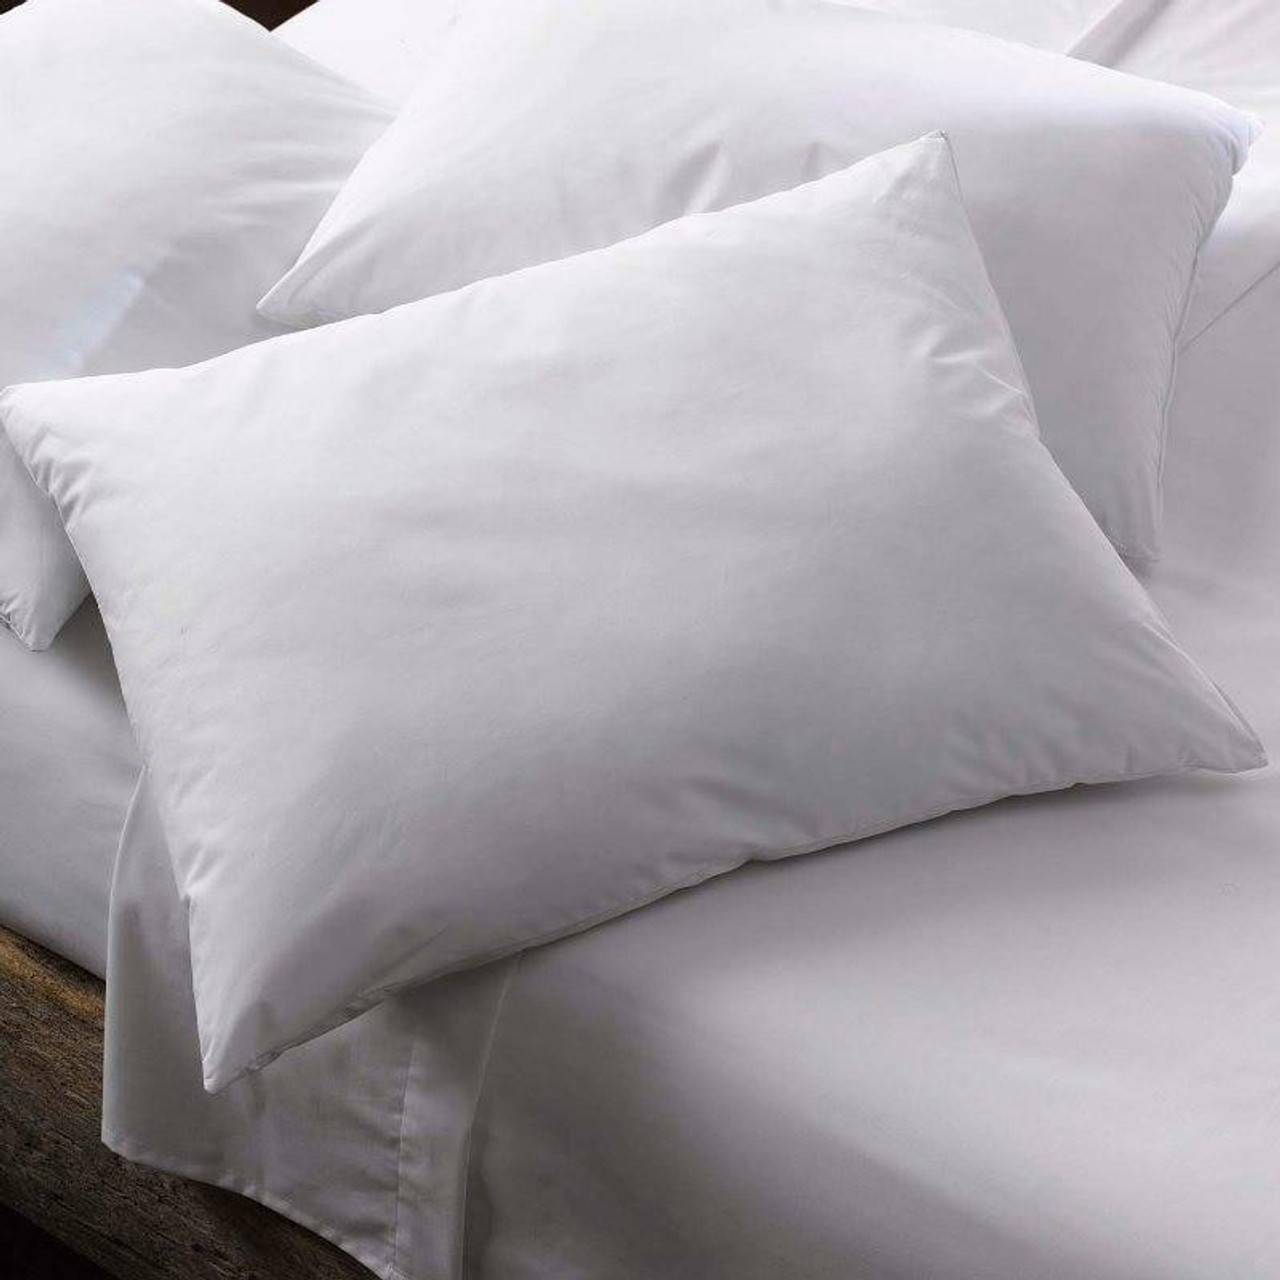 WestPoint Hospitality by Martex WESTPOINT or MARTEX or GREEN SOLID or PILLOW or STANDARD or 20x26 or 22OZ or PACK OF 12